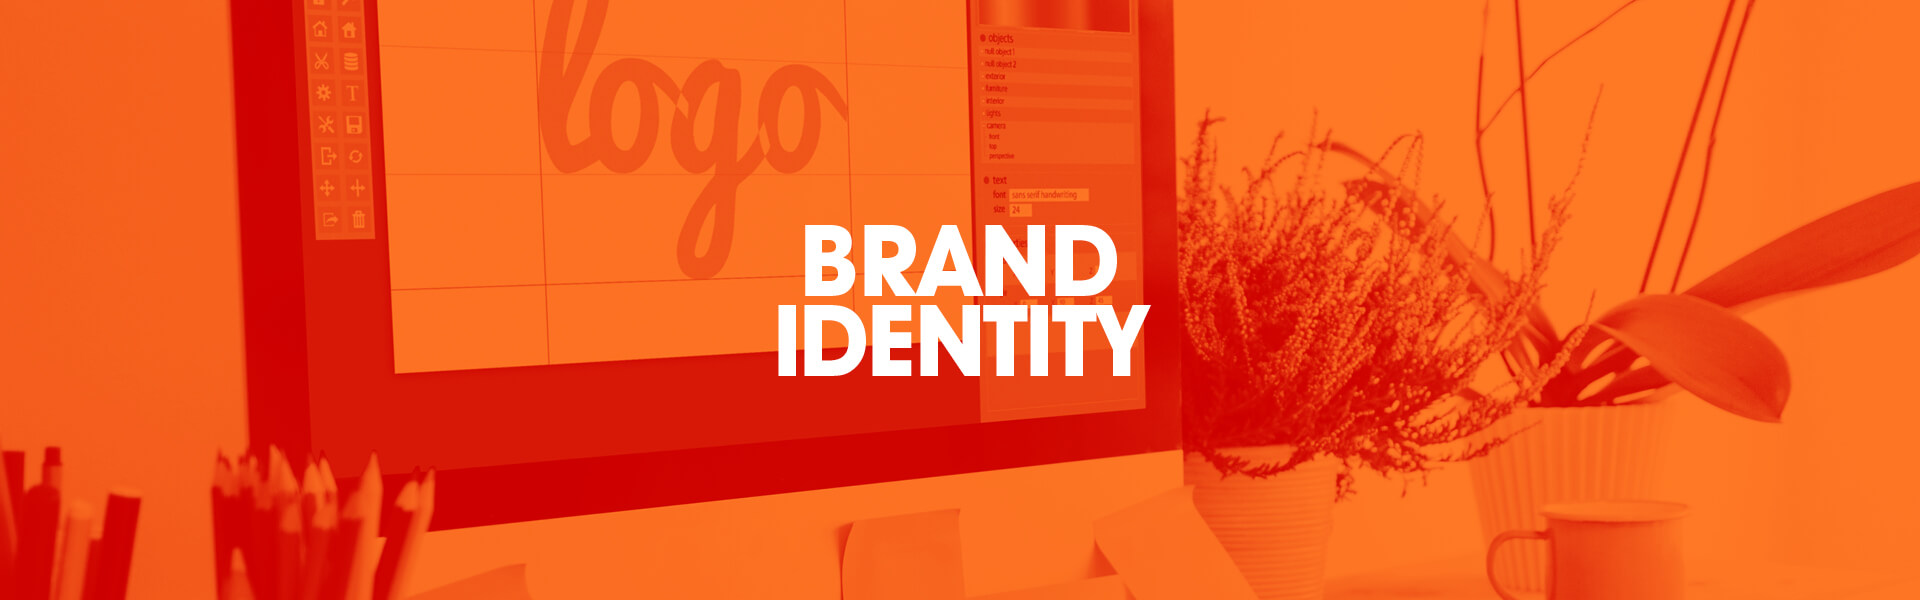 Brand Identity Design - Insights from Ad Agency Pros